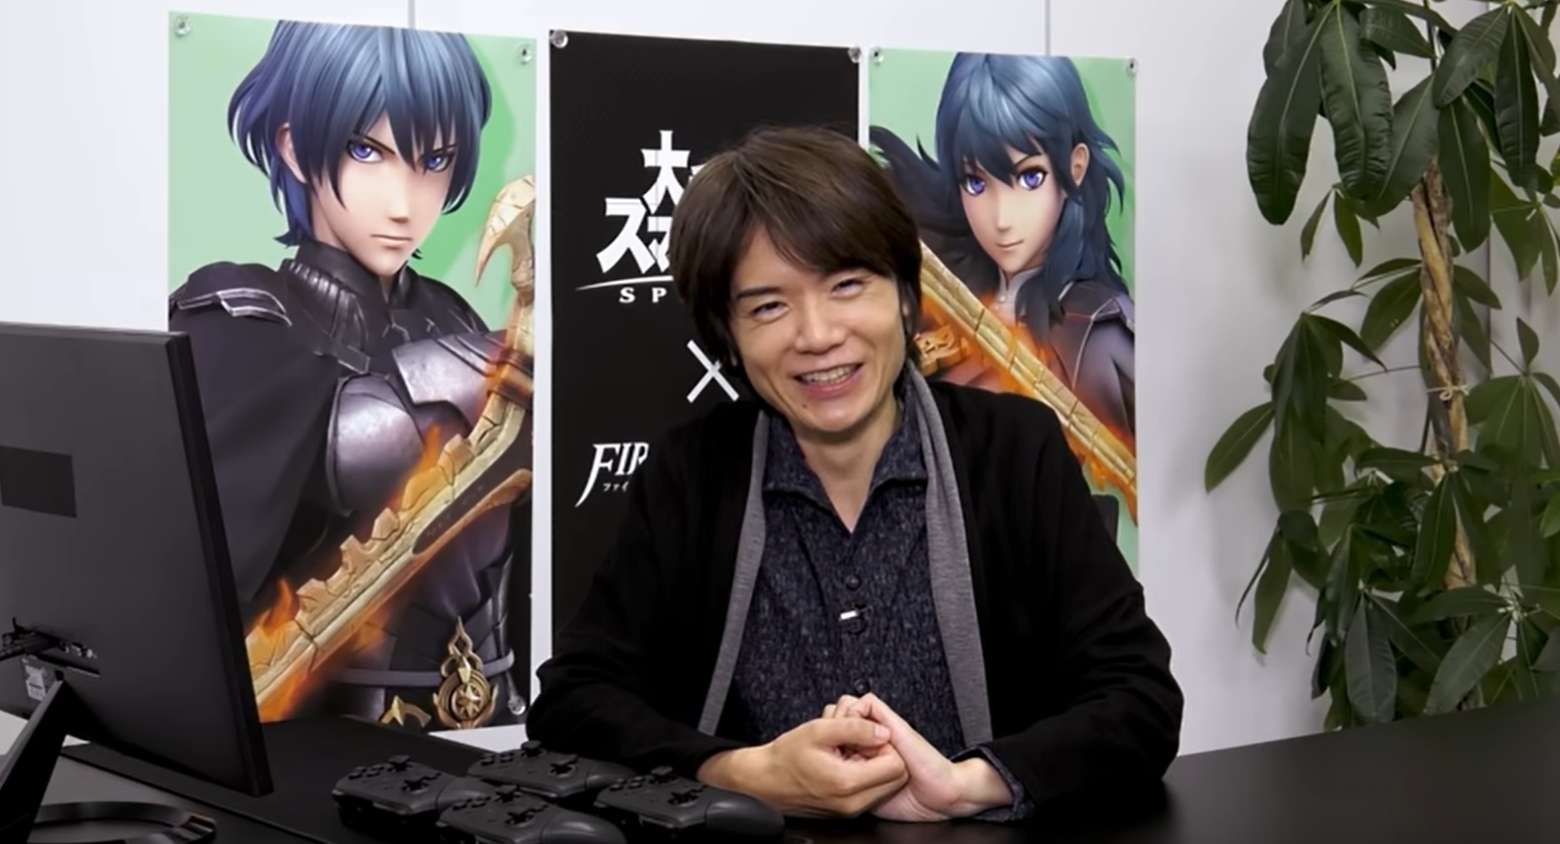 Super Smash Bros. Ultimate Director Agrees That There Are Too Many Fire Emblem Characters In The Game